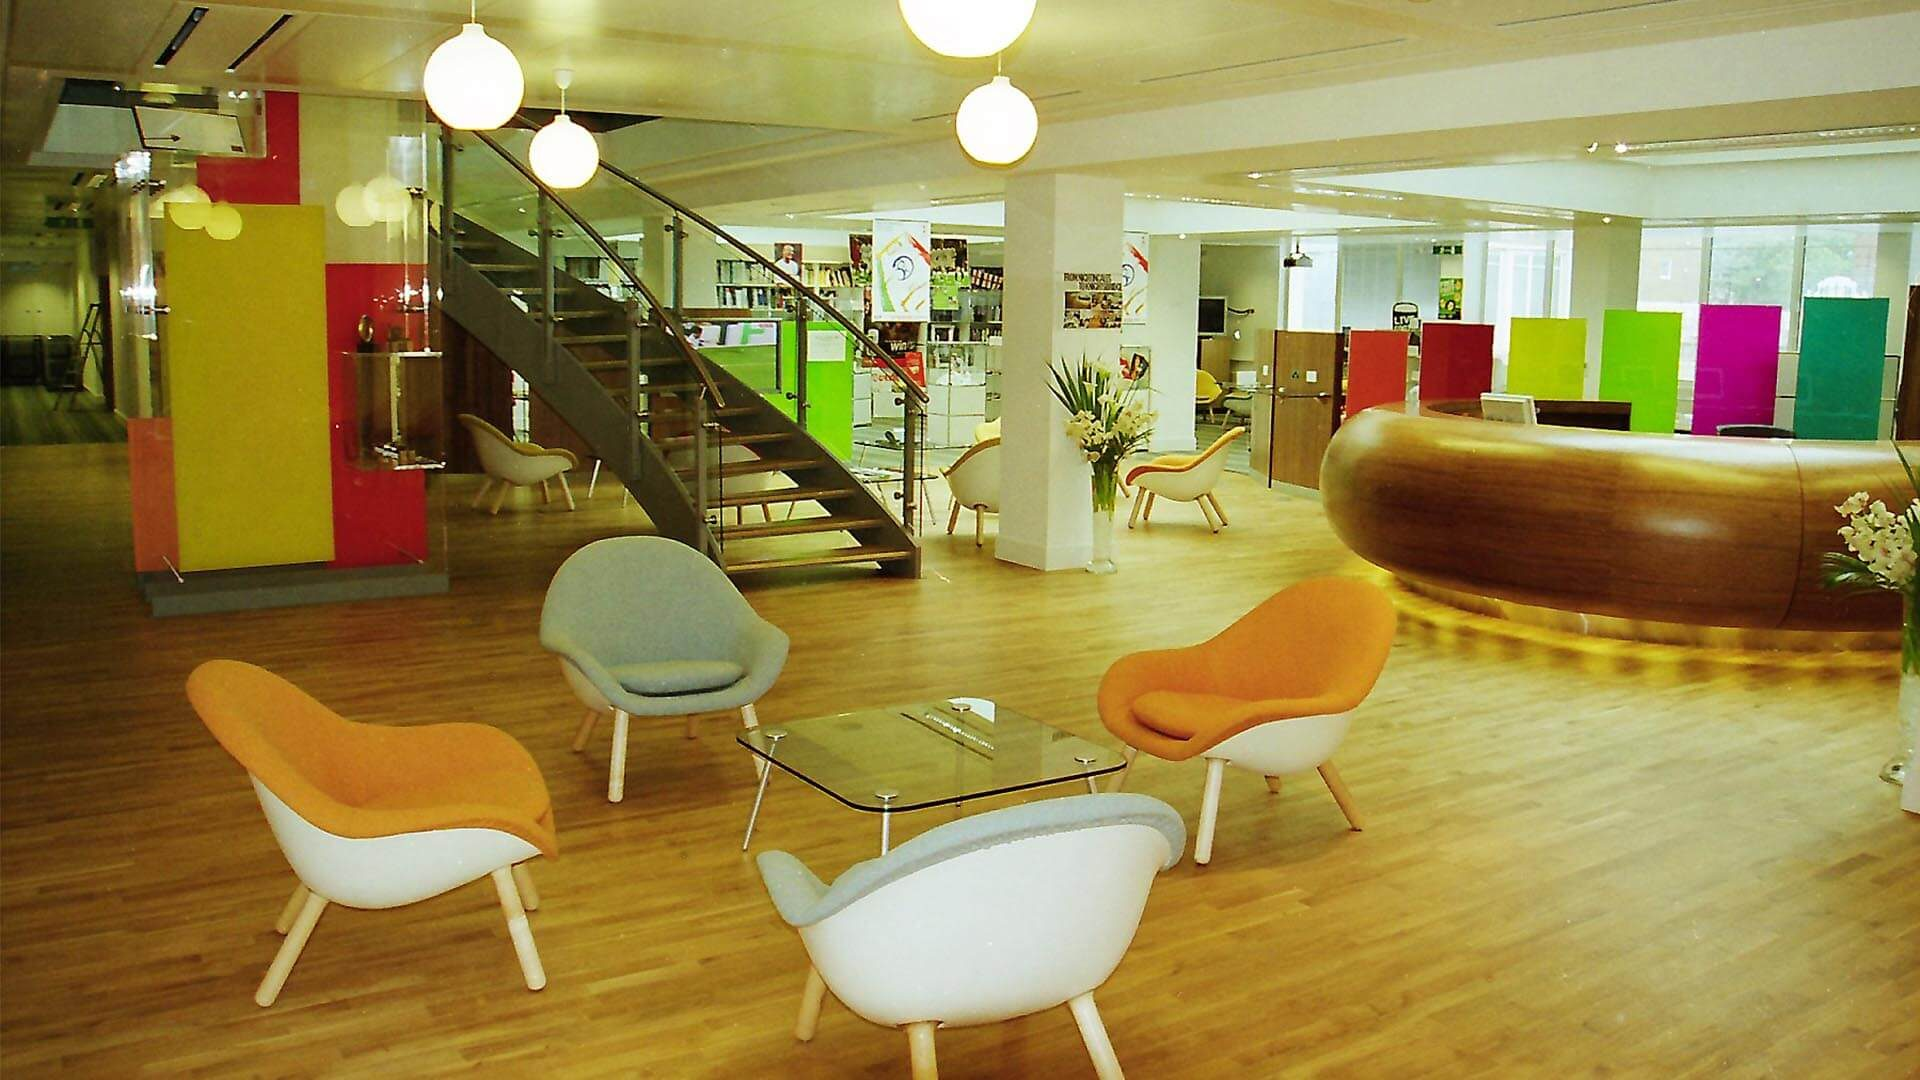 J Walter Thompson Award Winning interior with tables and chairs and interior staircase